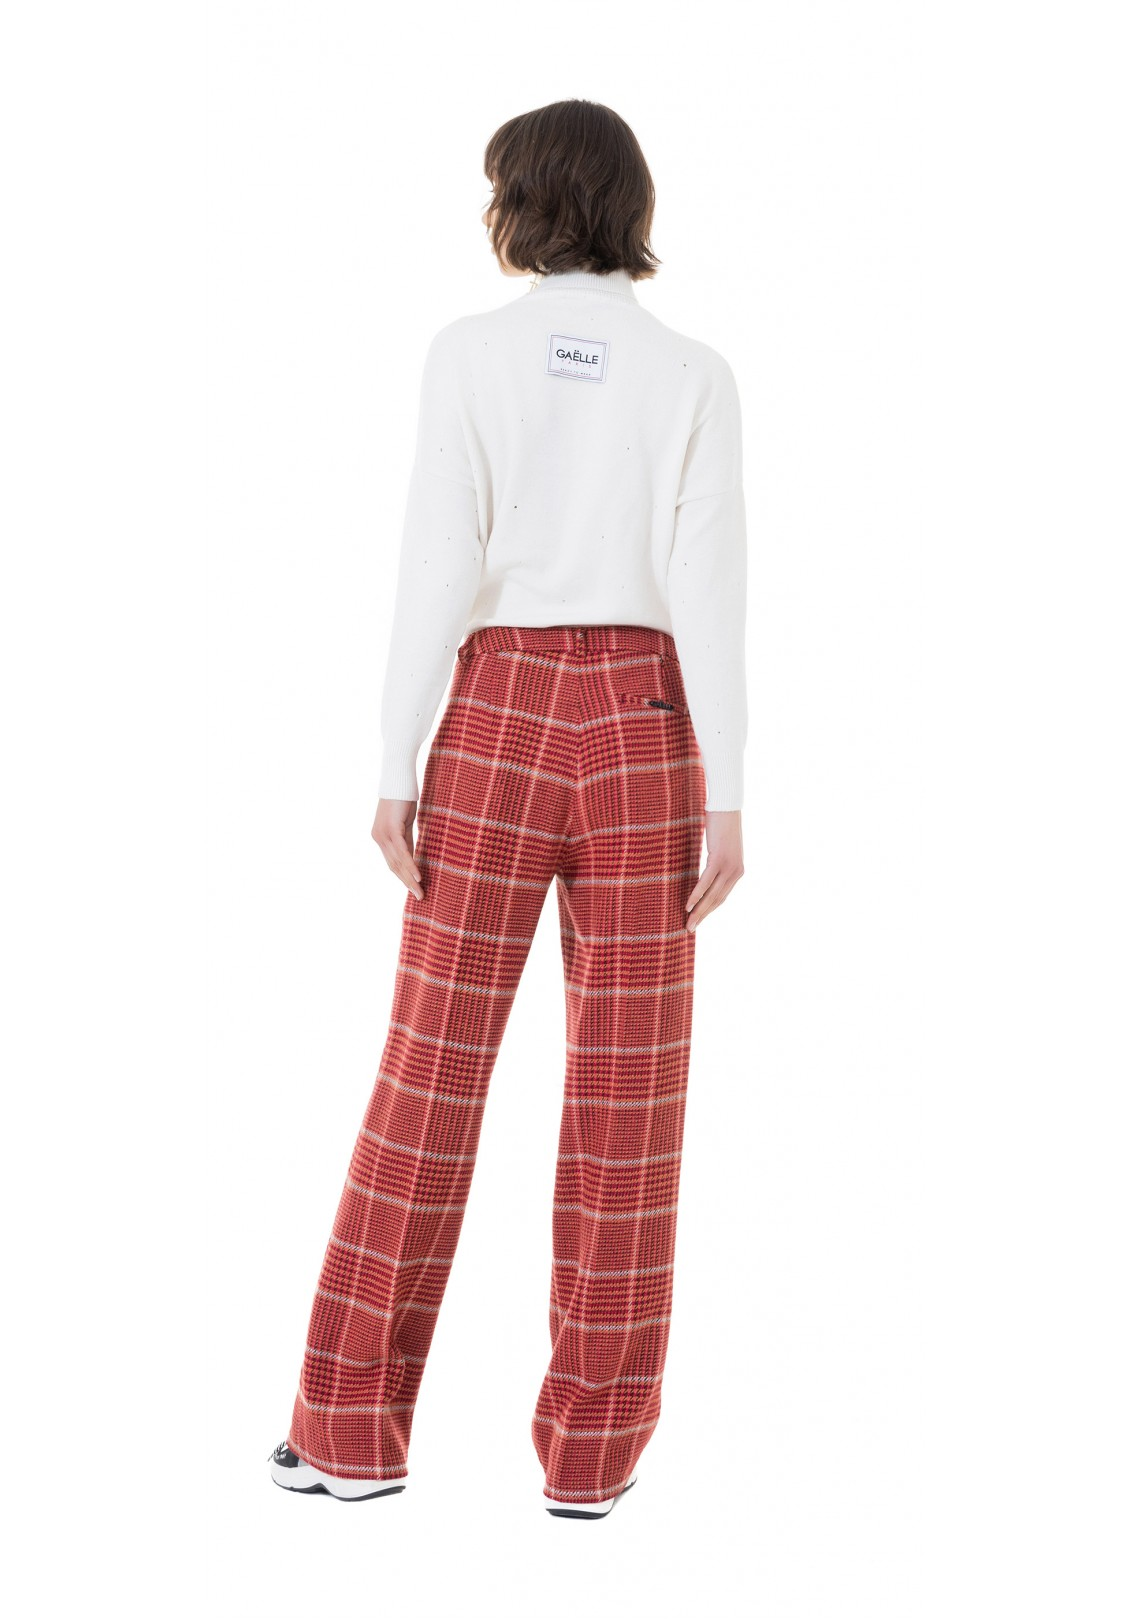 TROUSER - GBD4831 - GAELLE PARIS